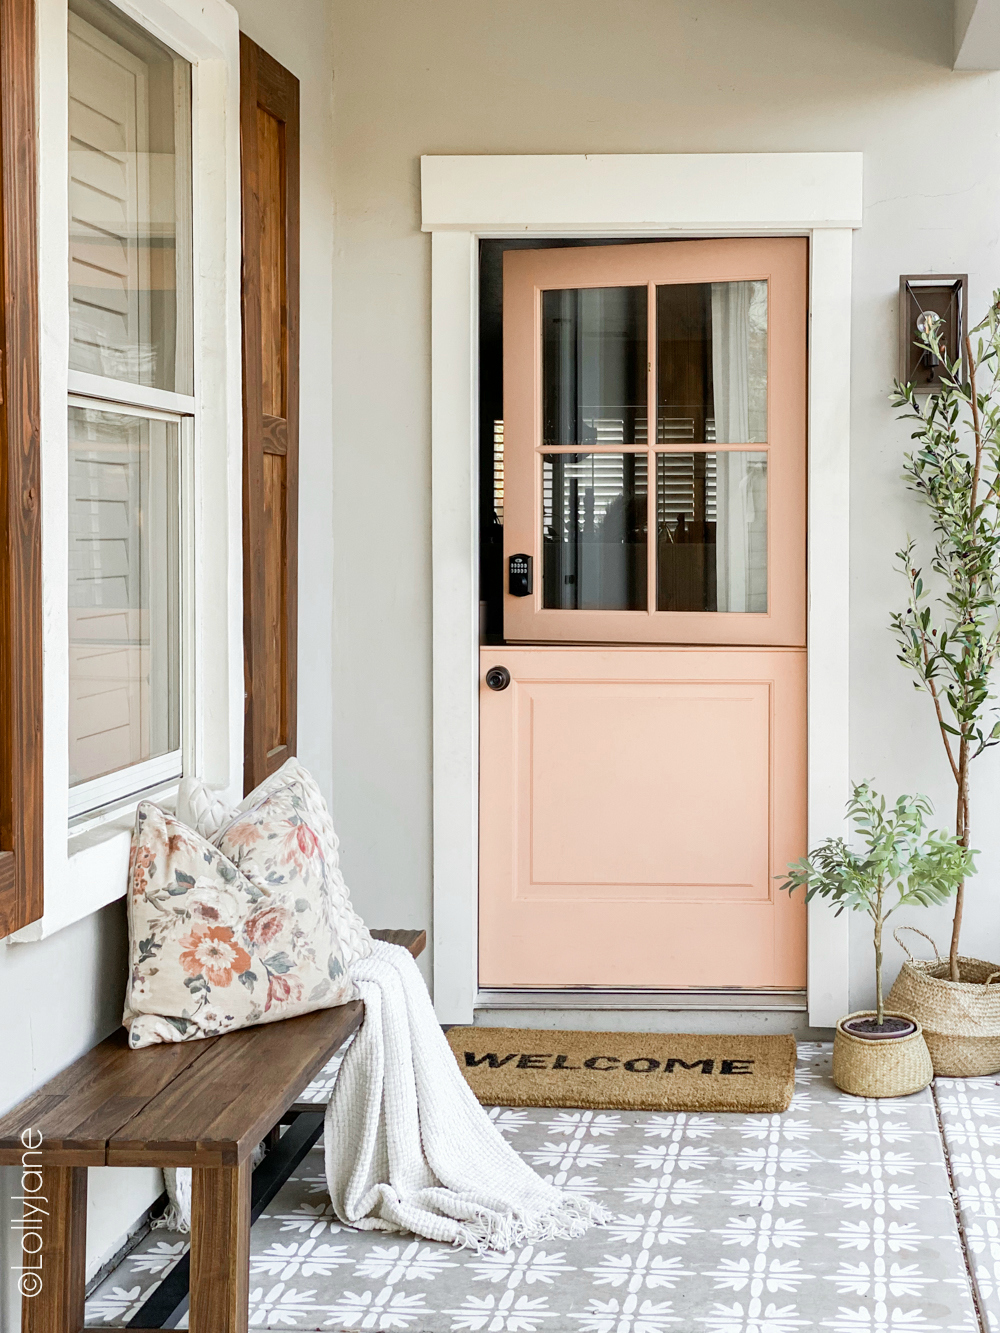 Spruce up a builder grade craftsman style home with these easy changesa DIYer of any level can do! Check out the before-- WOW! #diy #stencil #Dutchdoor #pinkdoor #makeover #porchdecor #porchmakeover